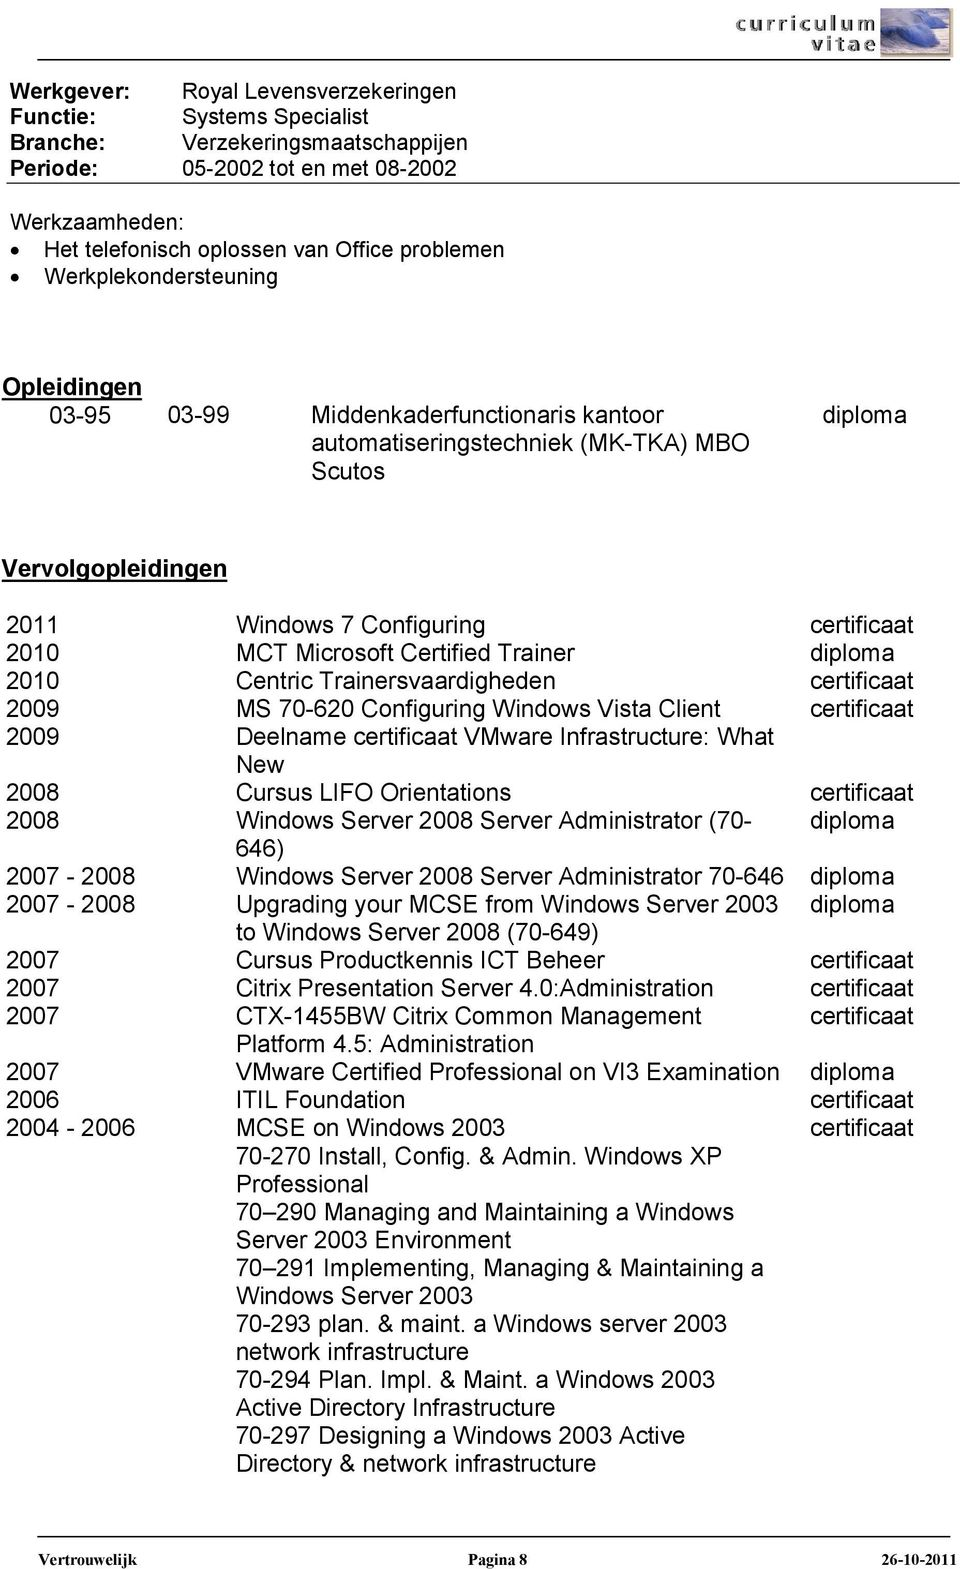 Trainer diploma 2010 Centric Trainersvaardigheden certificaat 2009 MS 70-620 Configuring Windows Vista Client certificaat 2009 Deelname certificaat VMware Infrastructure: What New 2008 Cursus LIFO